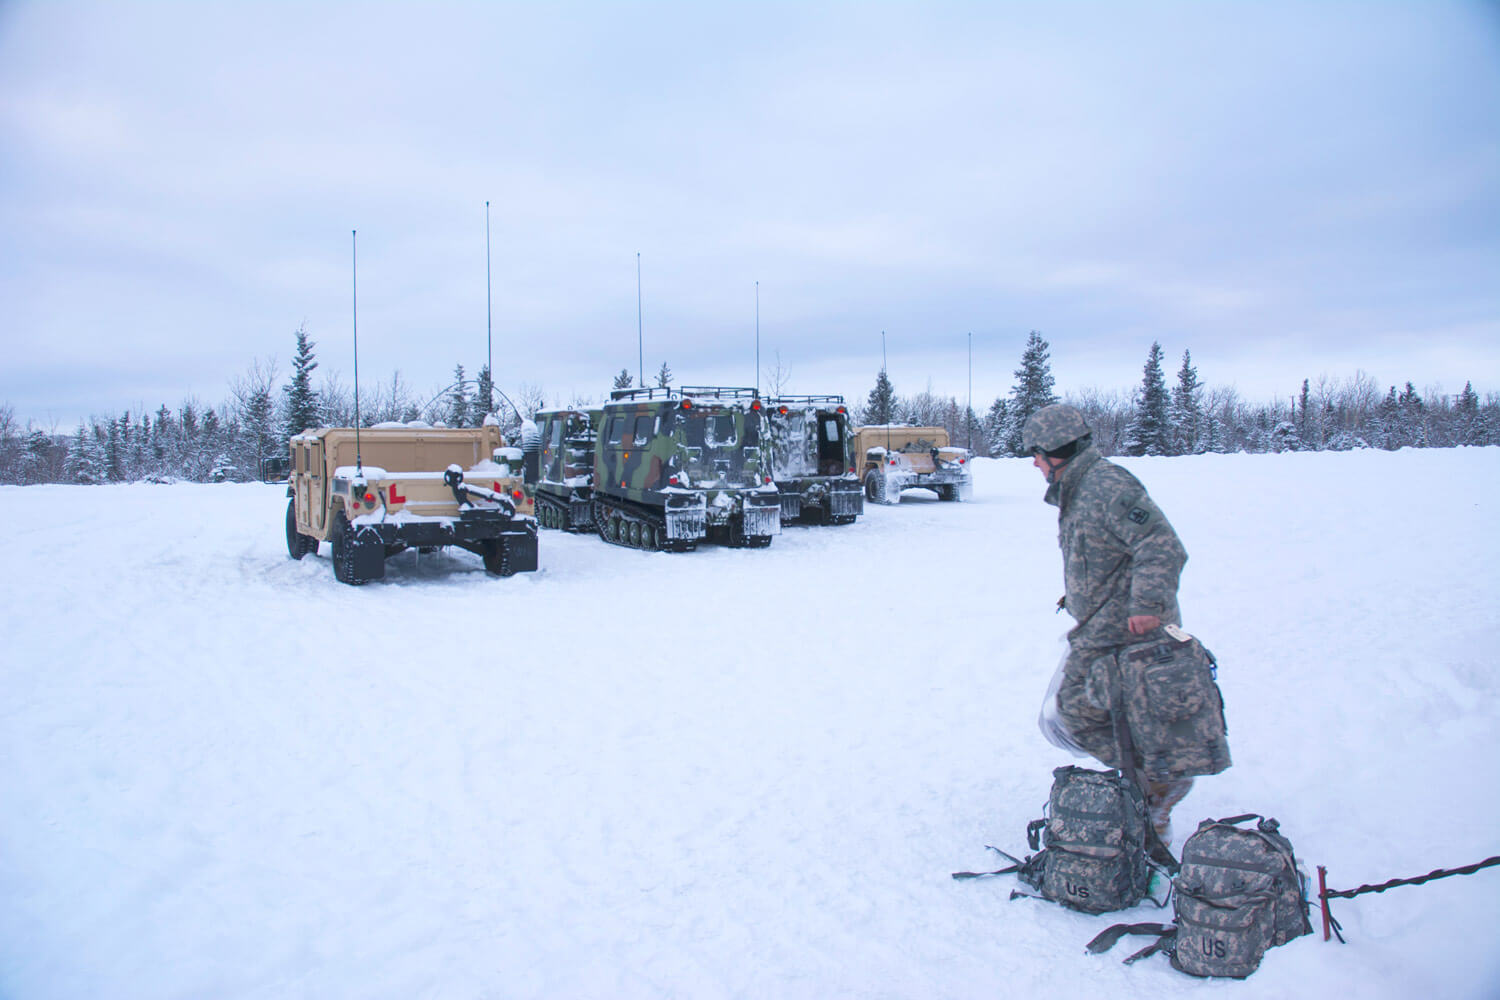 A Soldier from the 29th Infantry Brigade, Hawaii Army National Guard prepares to load supplies onto a HMMWV at Fort Greely, Alaska after a snow storm during Arctic Eagle 2018. Arctic Eagle was a cold-weather training exercise hosted by the Alaska Army National Guard. It was held Feb. 20 – March 8 and took place at multiple locations across Alaska including Fairbanks, Valdez, the Alaska/Canada Boarder, Joint Base Elmendorf–Richardson, and Fort Greely. National Guard Bureau photo by Lauren di Scipio